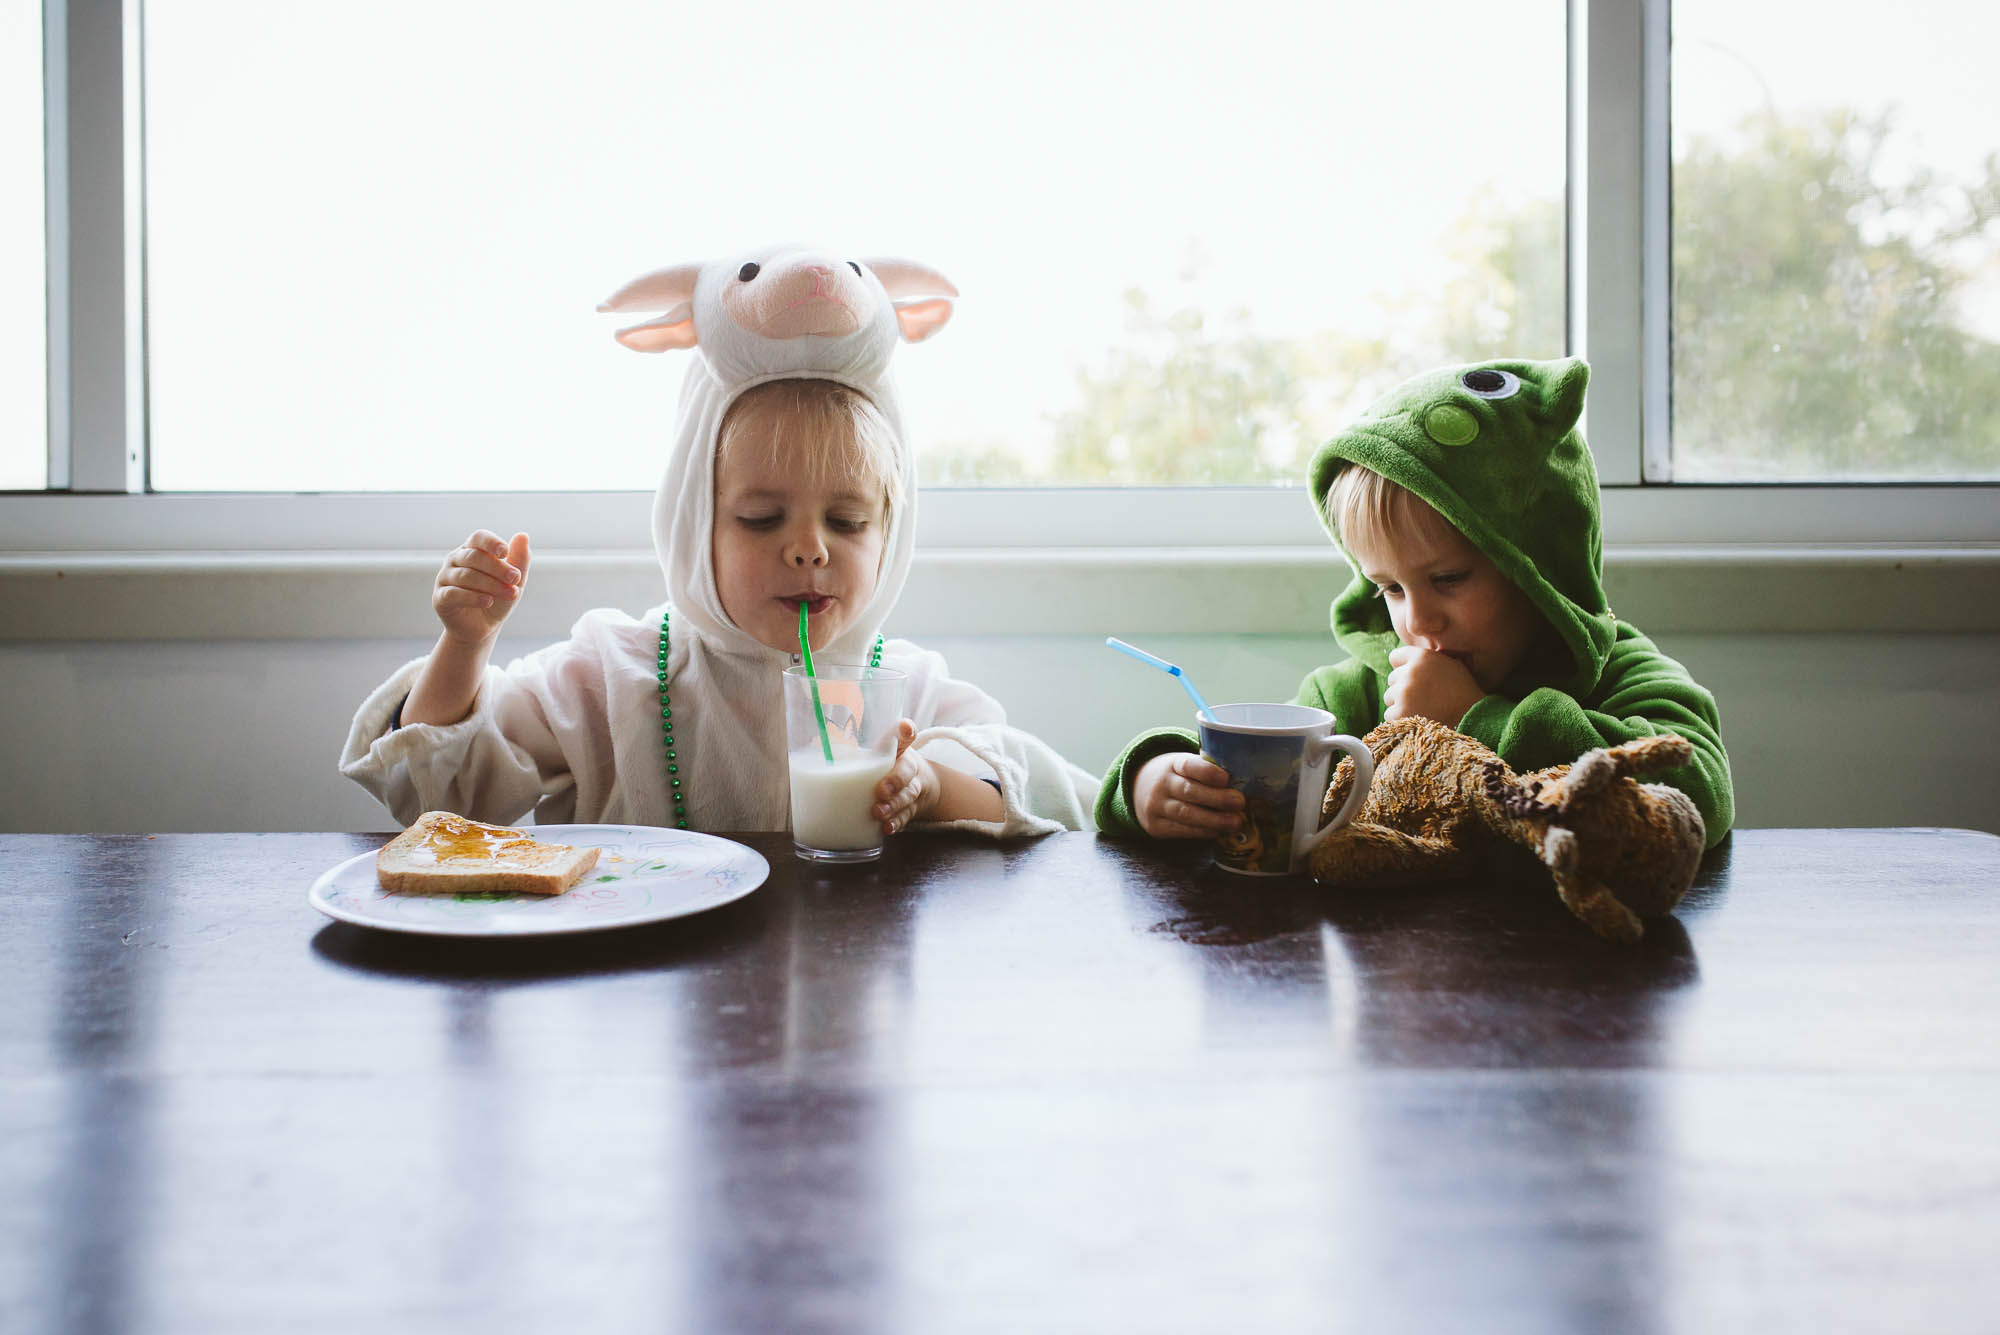 brothers-eating-at-table-together-in-animal-dress-up-costumes